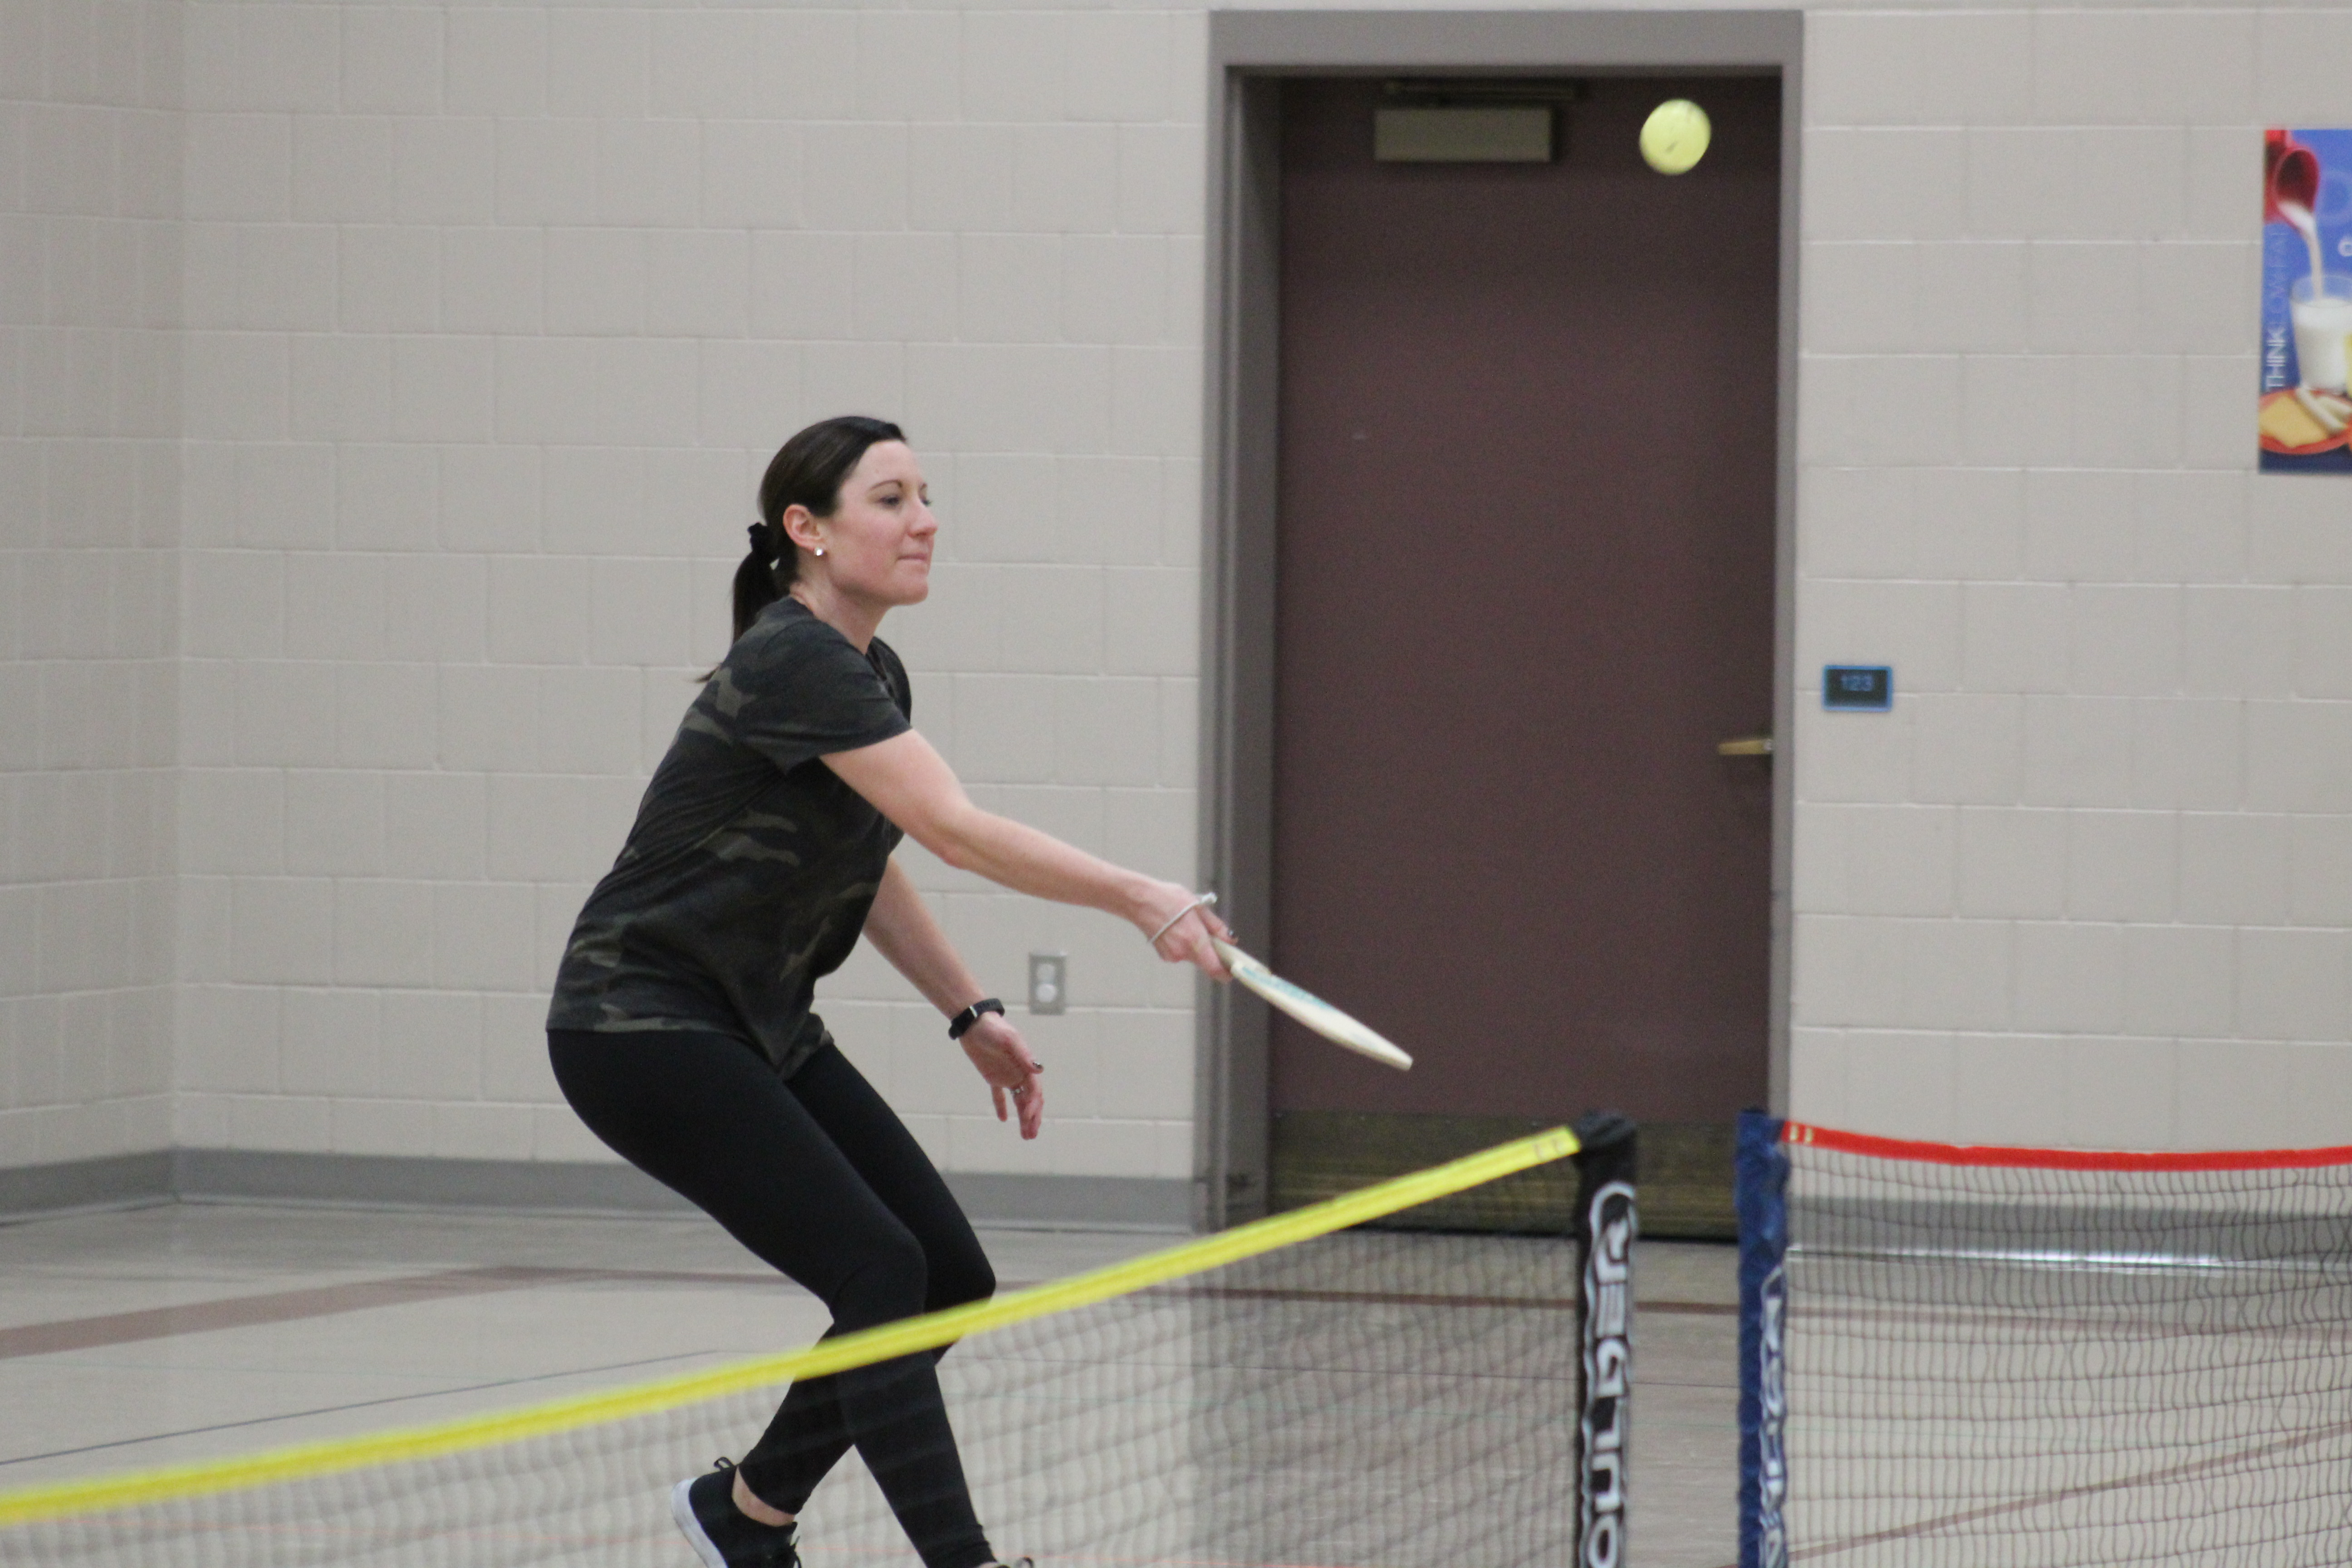 parent practices pickle ball